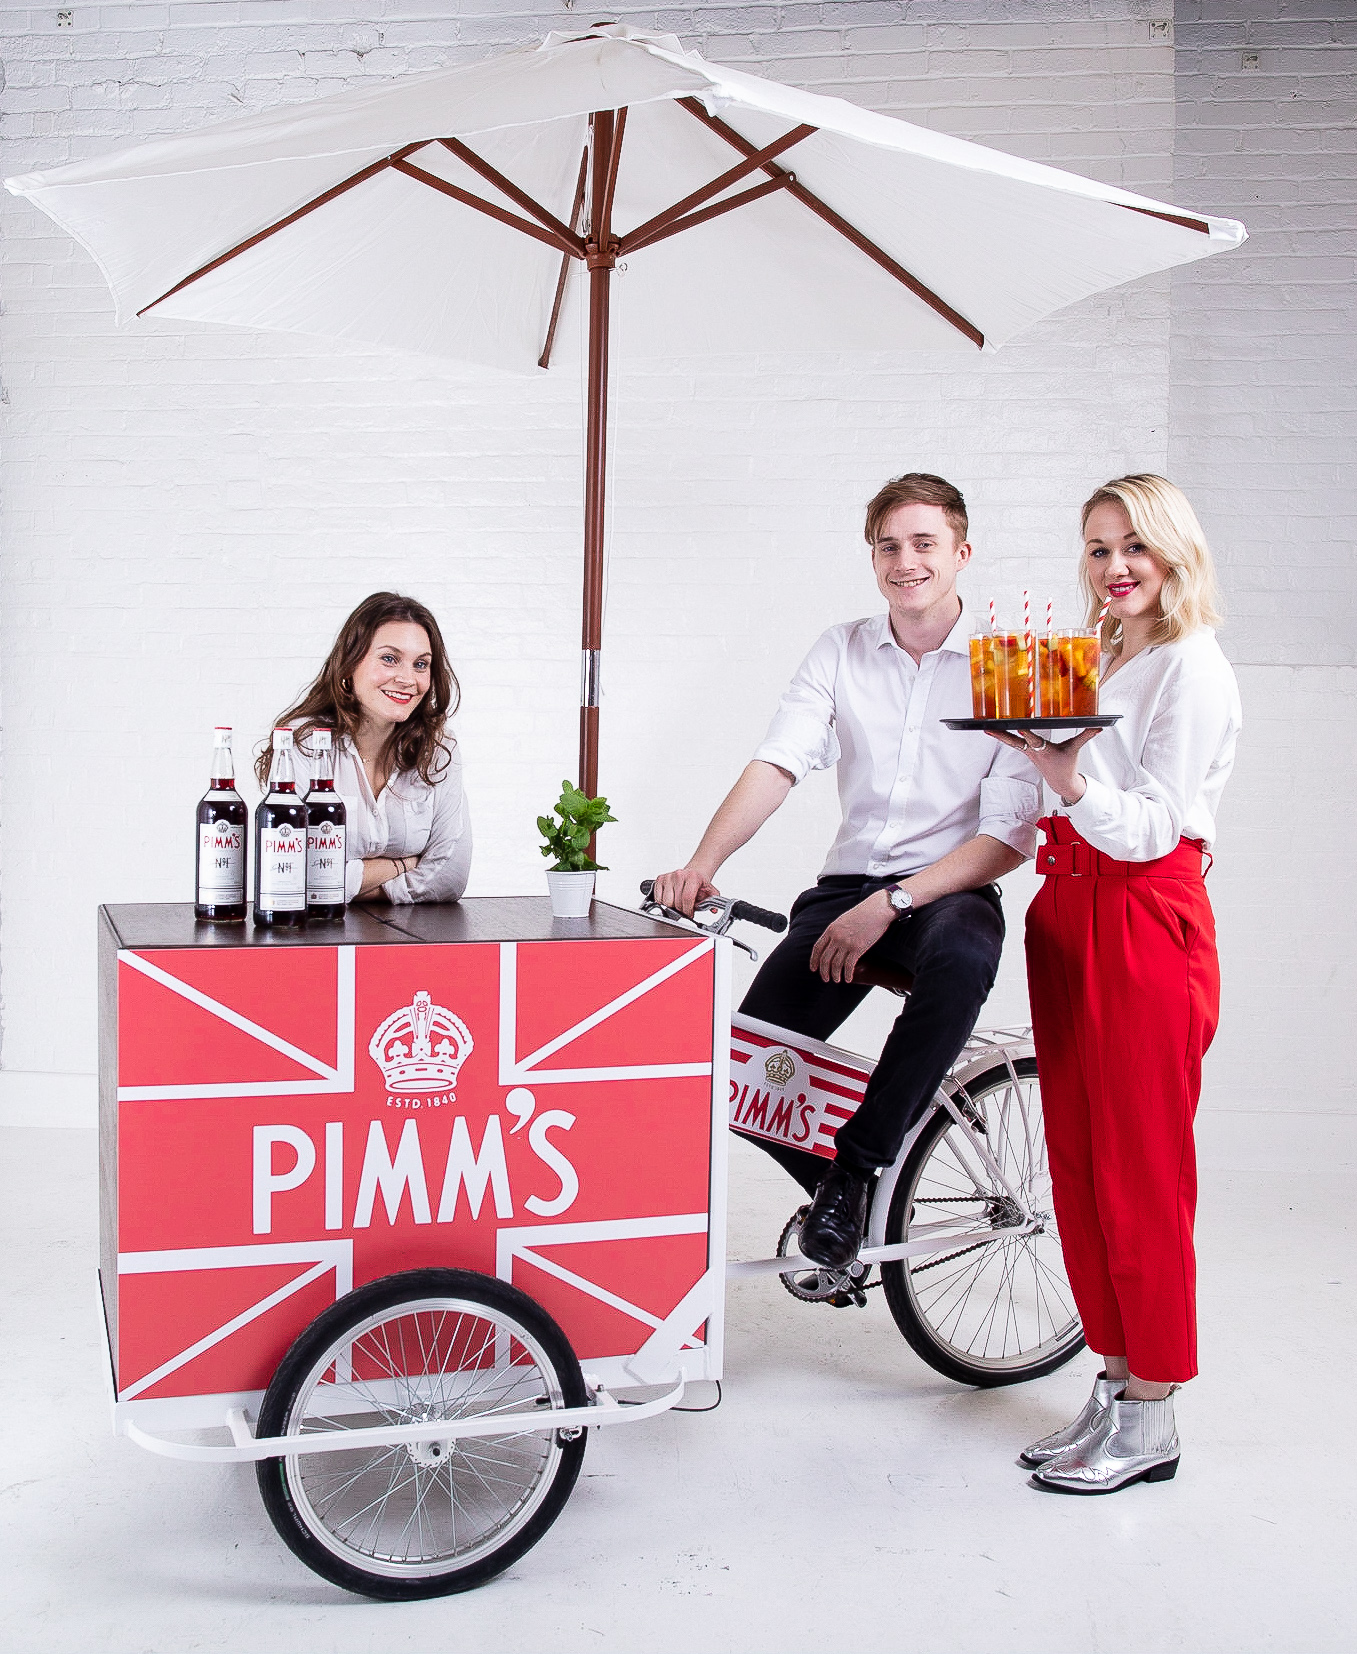 Quirky Group Pimms Tricycle Bar with brand ambassadors serving cocktails